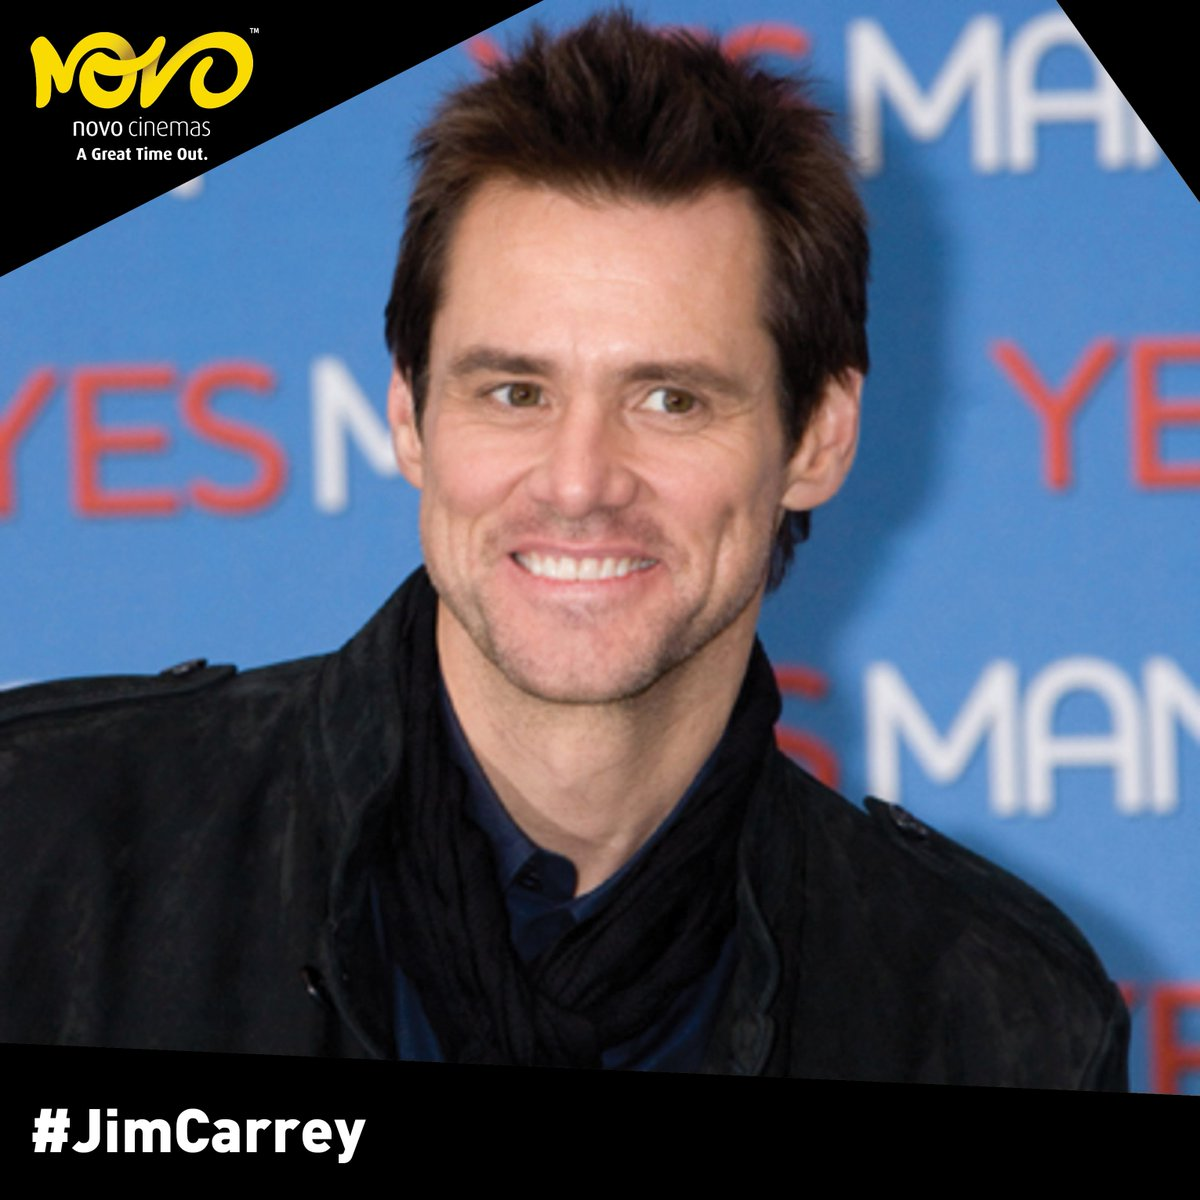 Jim Carrey turns 59 today 🎂🎊🎉. The legendary actor is known for his exceptional characters in the blockbuster movies The Mask, Dumb and Dumber and Bruce Almighty to name a few.    Which is your favorite of his films?   #NovoCinemas #JimCarrey #HBD #Cinema  #AGreatTimeOut